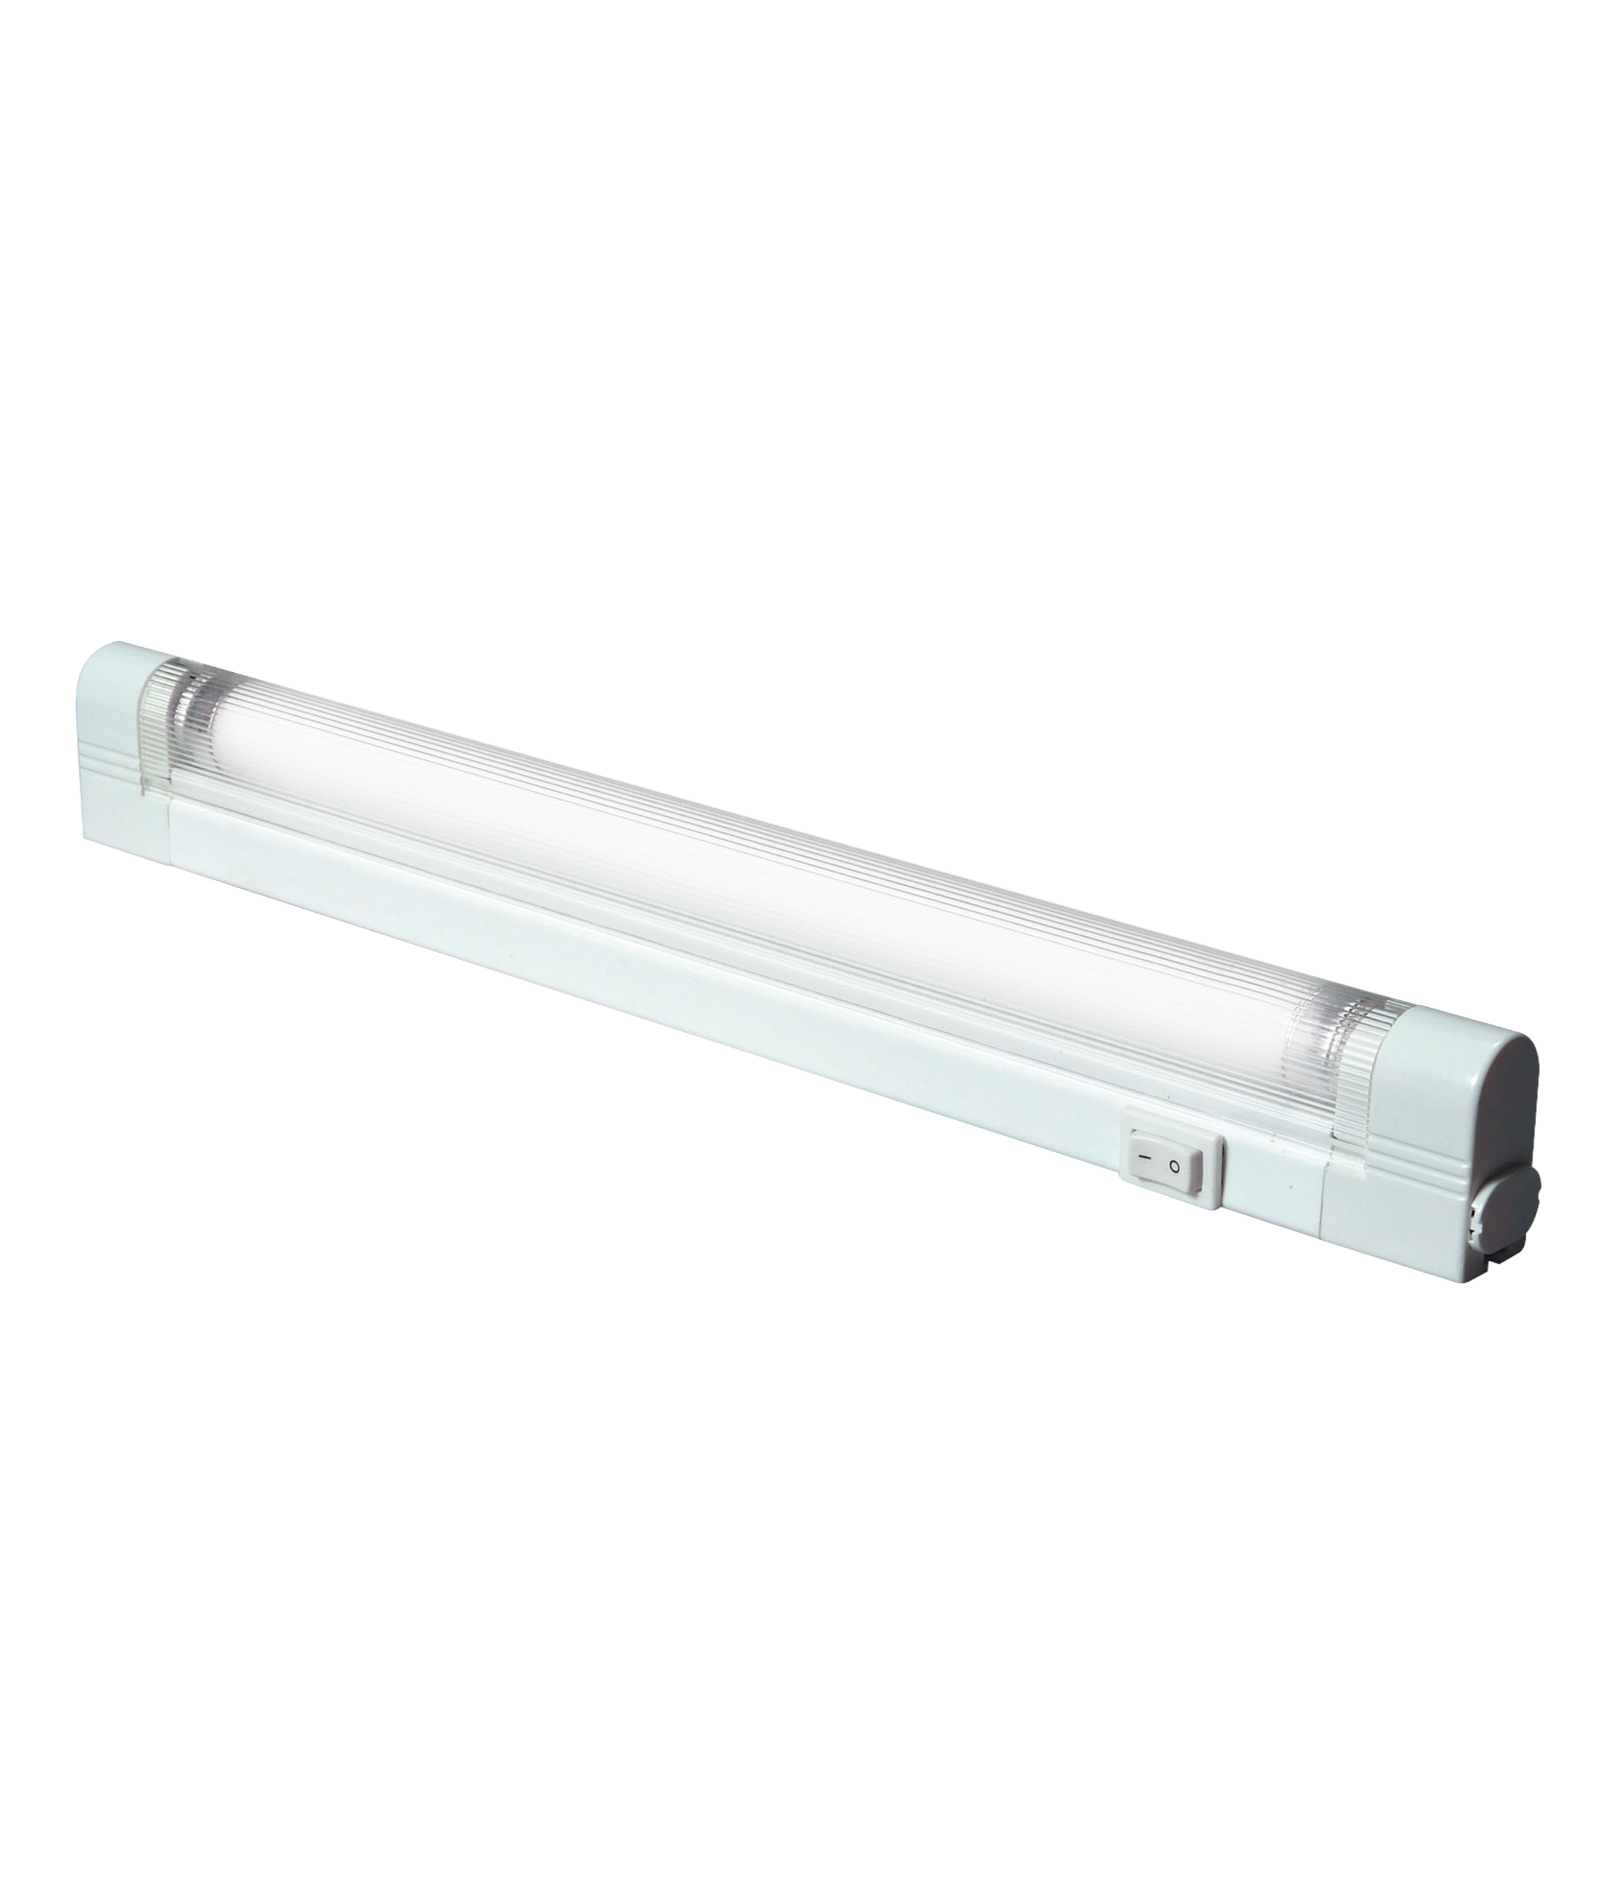 Linkable T5 Fluorescent Batten For Use Under Kitchen Cabinets